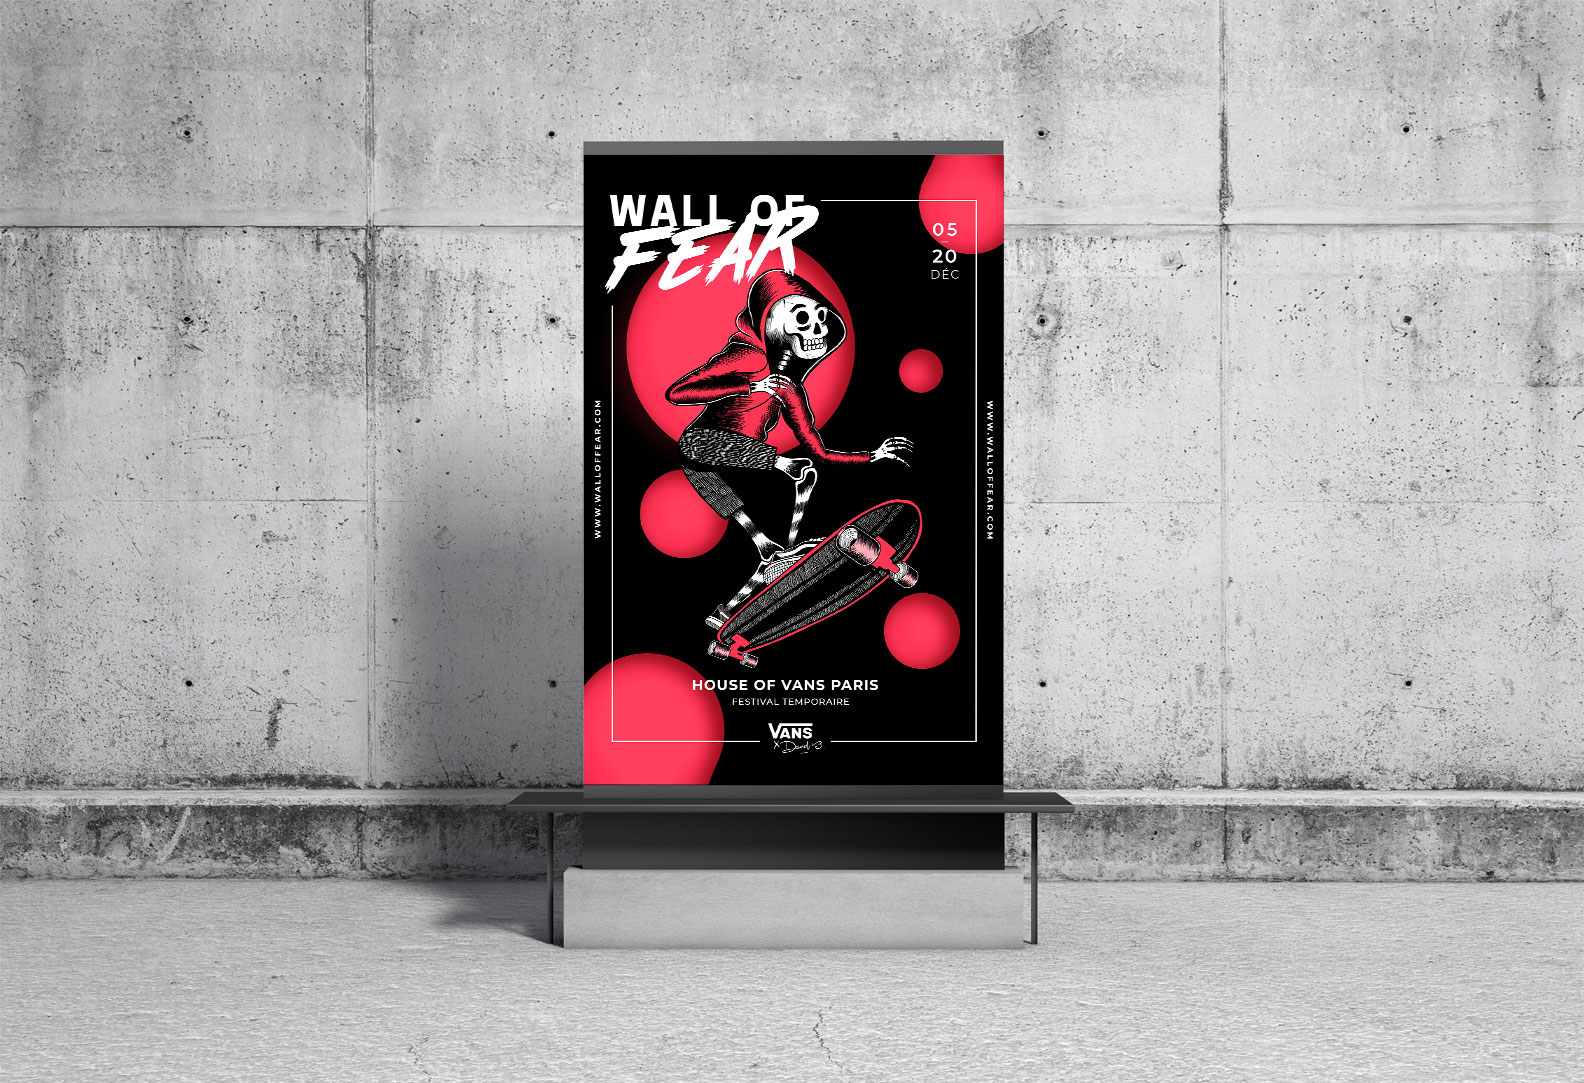 wall-of-fear-affiche-jour